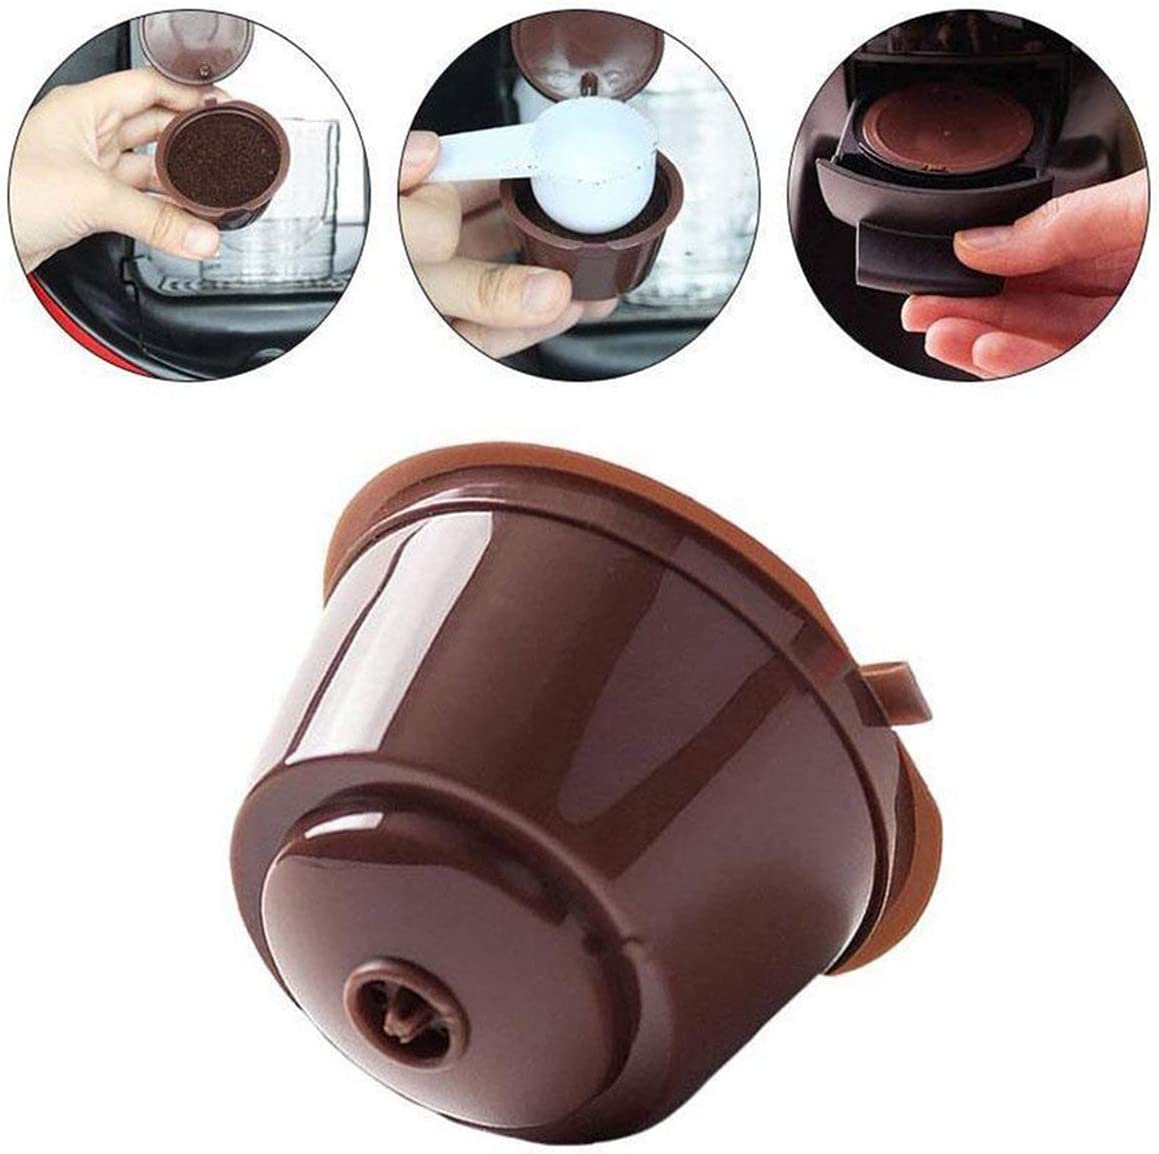 brown 3pcs spoon brush Tree-de-Life Reusable Coffee Capsule Pod Filter Cups Set With Spoon Brush Eco Friendly Stainless Steel Mesh Filter Suitable For Dolce Gusto